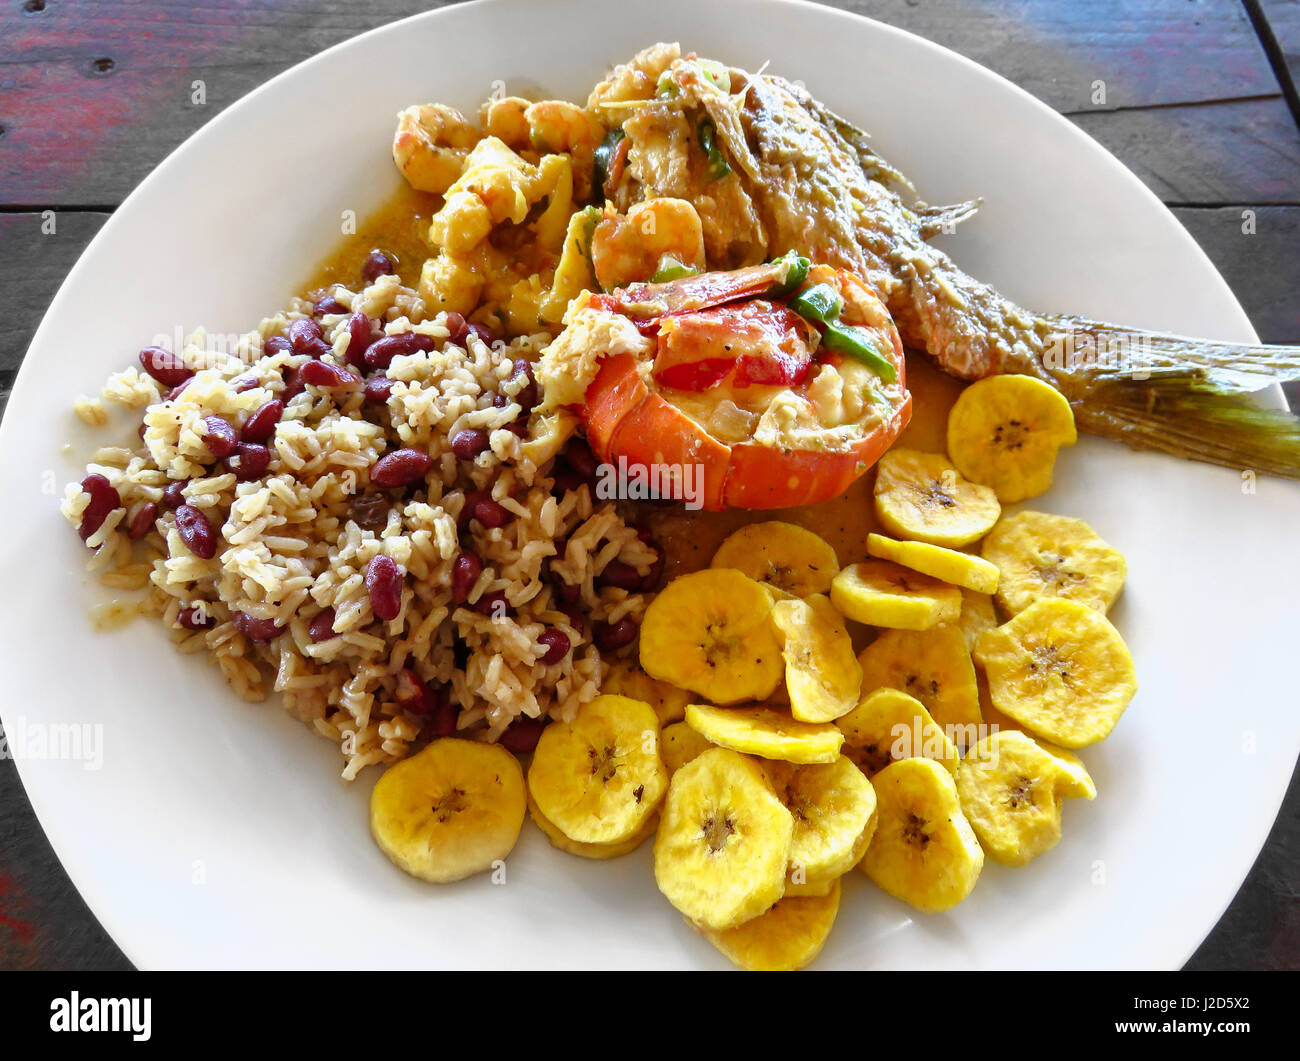 Honduras cuisine stock photos honduras cuisine stock images alamy local food lobster red snapper fish shrimp rice beans fried forumfinder Image collections